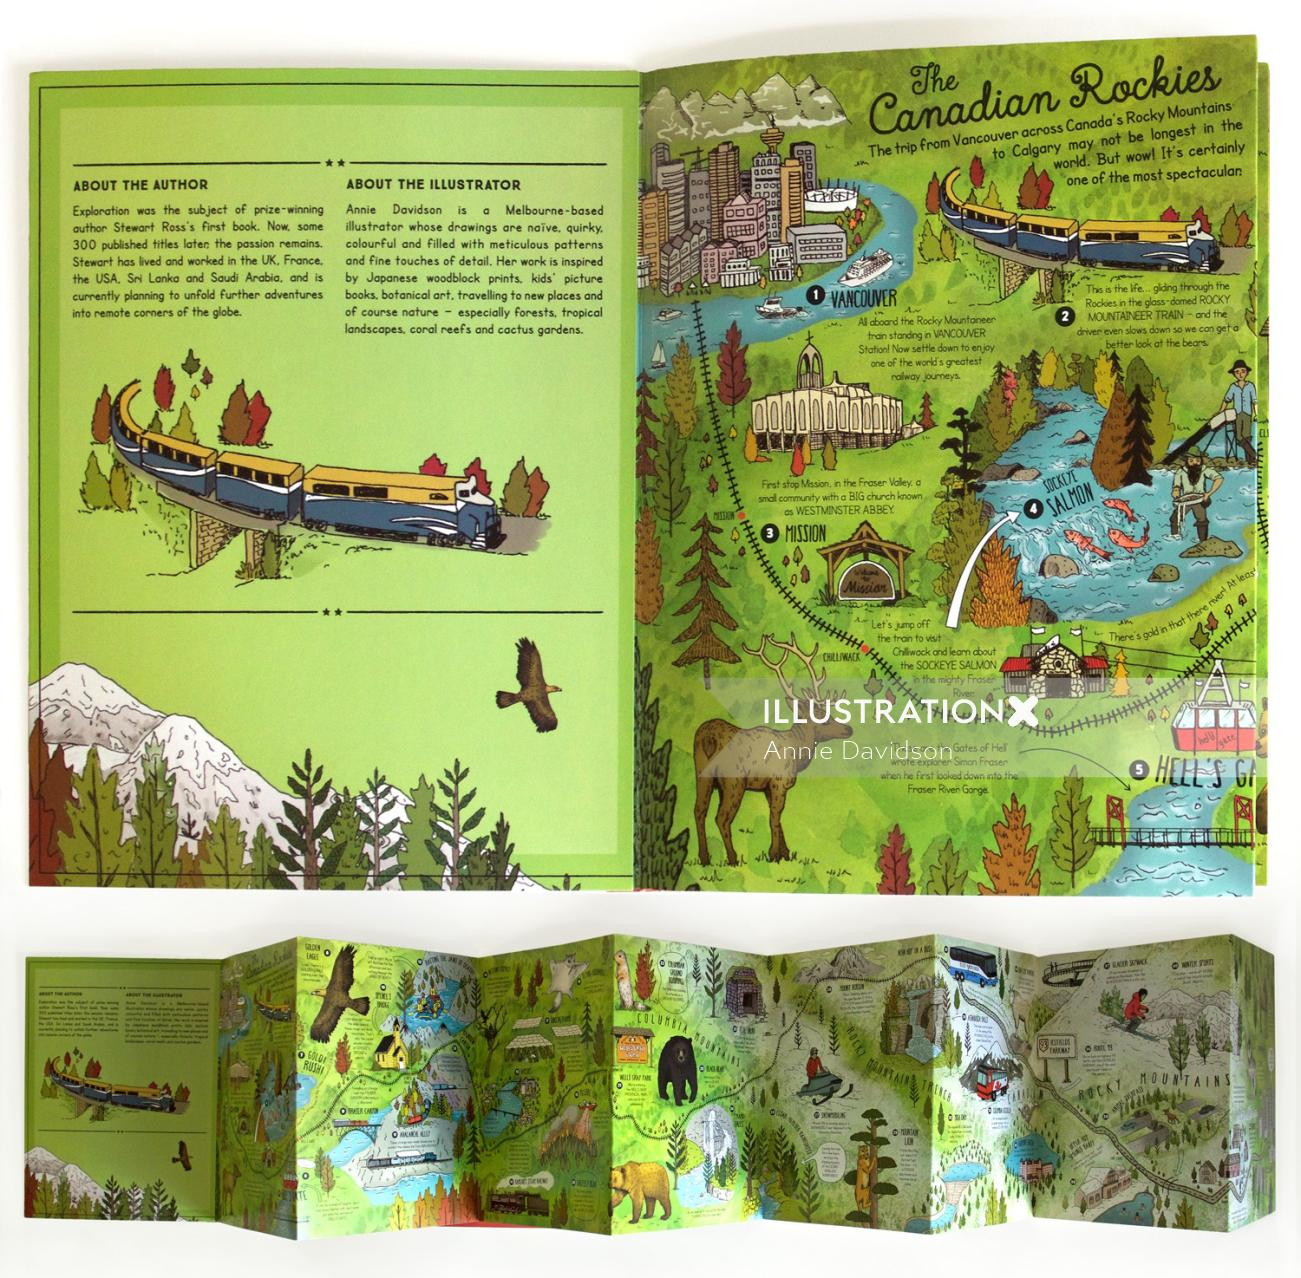 The canadian rockies editorial illustration